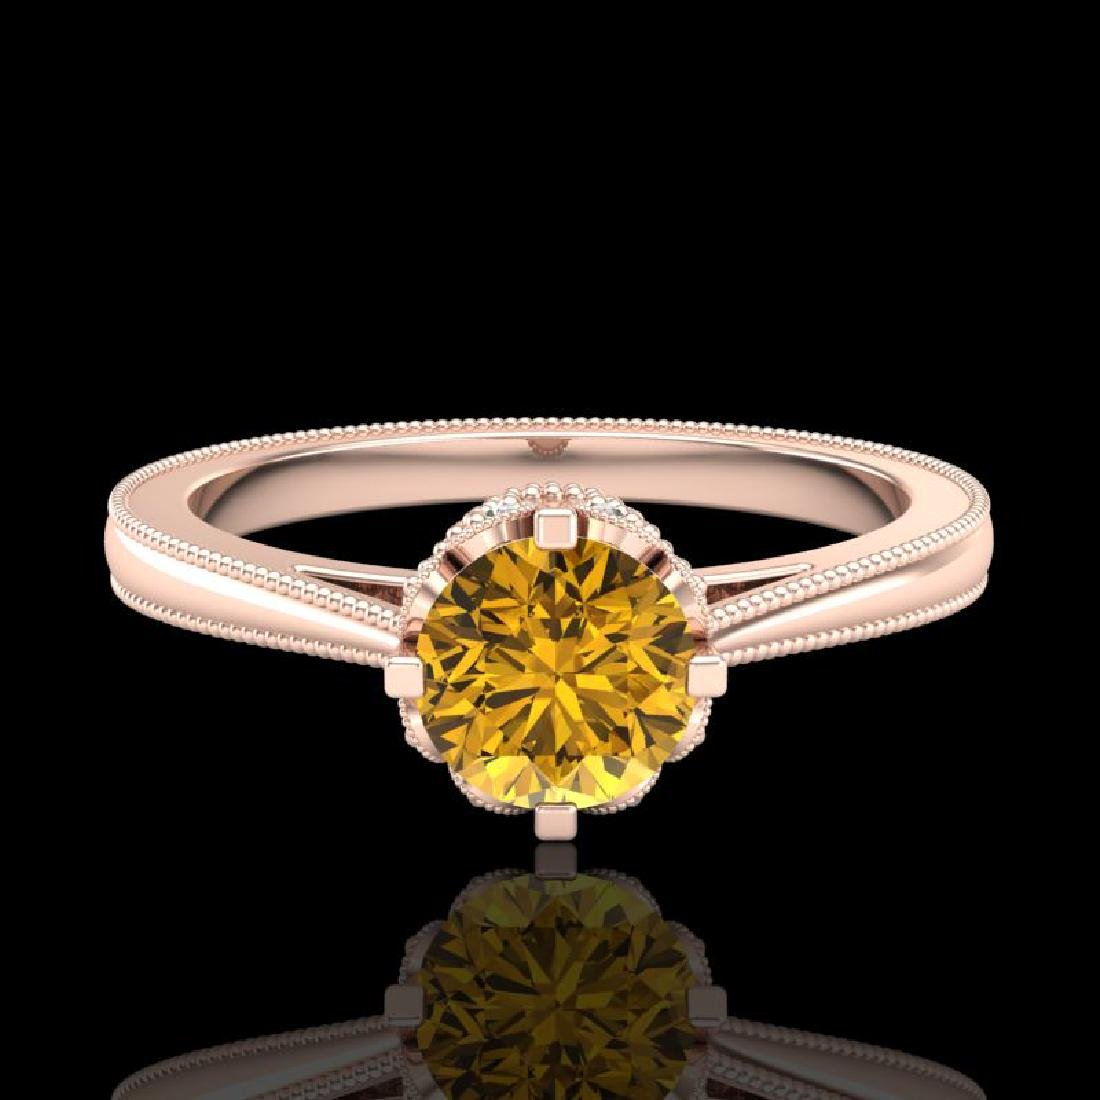 0.81 CTW Intense Fancy Yellow Diamond Engagement Art - 2